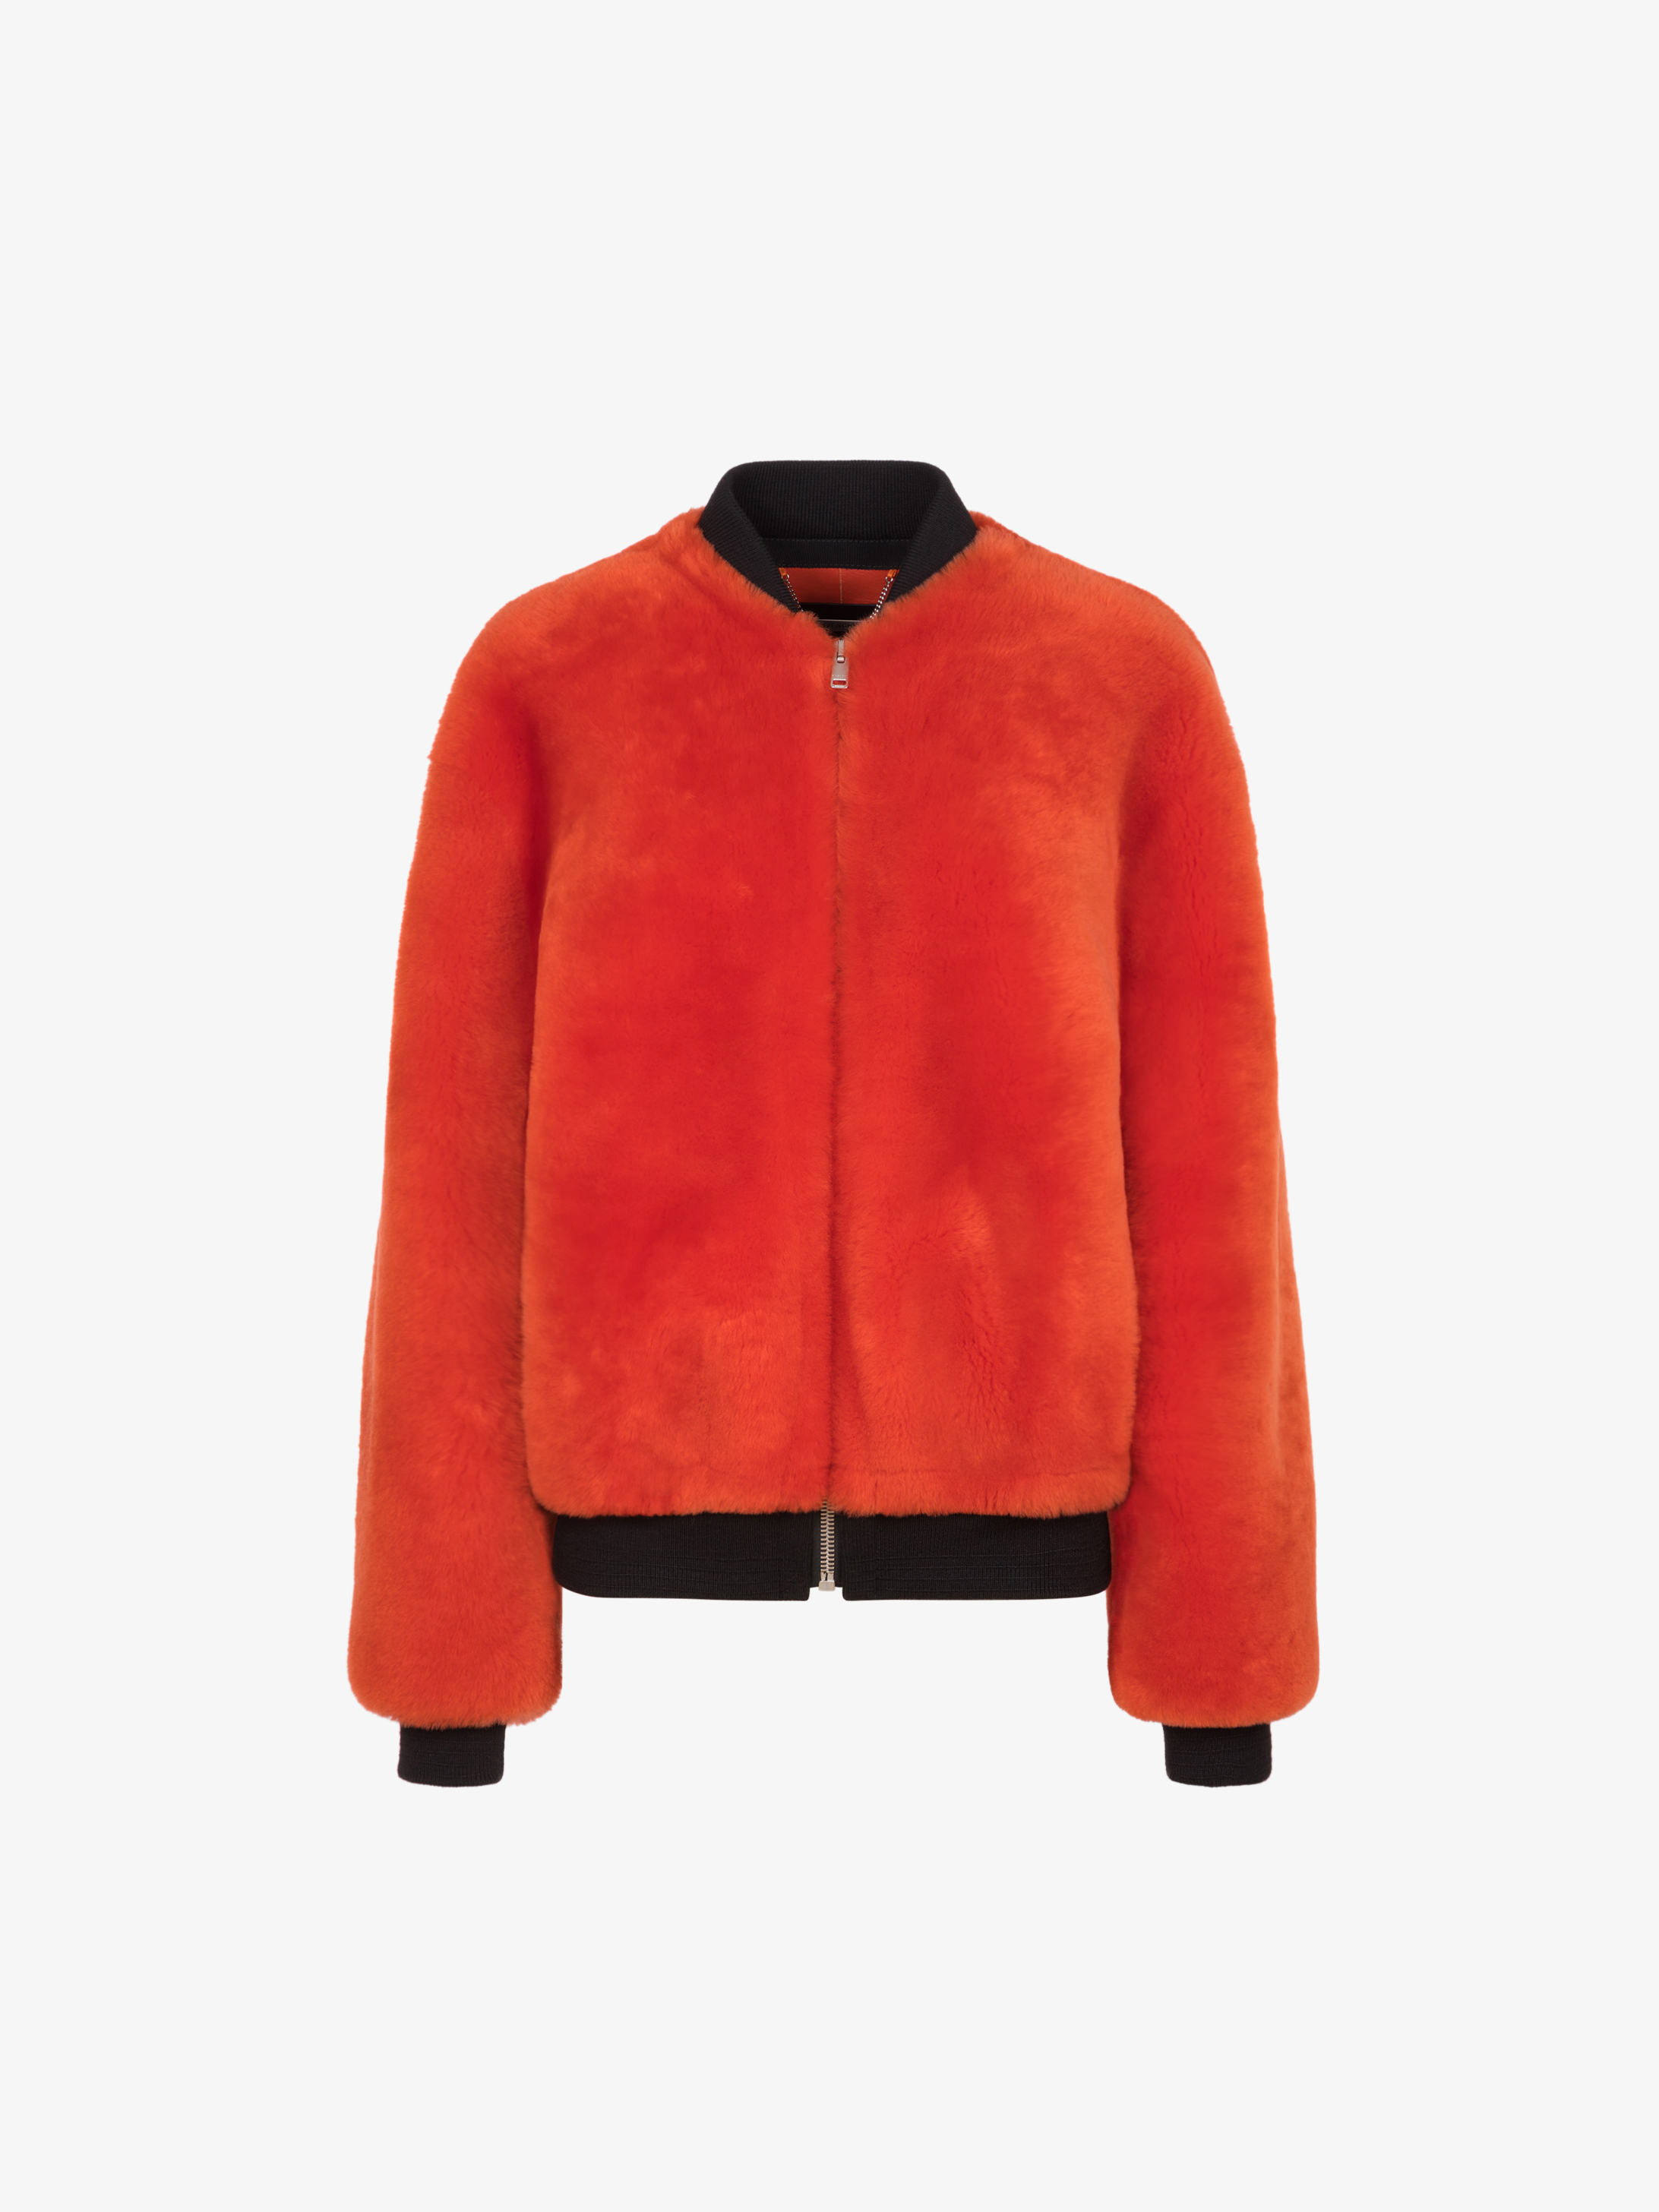 GIVENCHY address shearling bomber